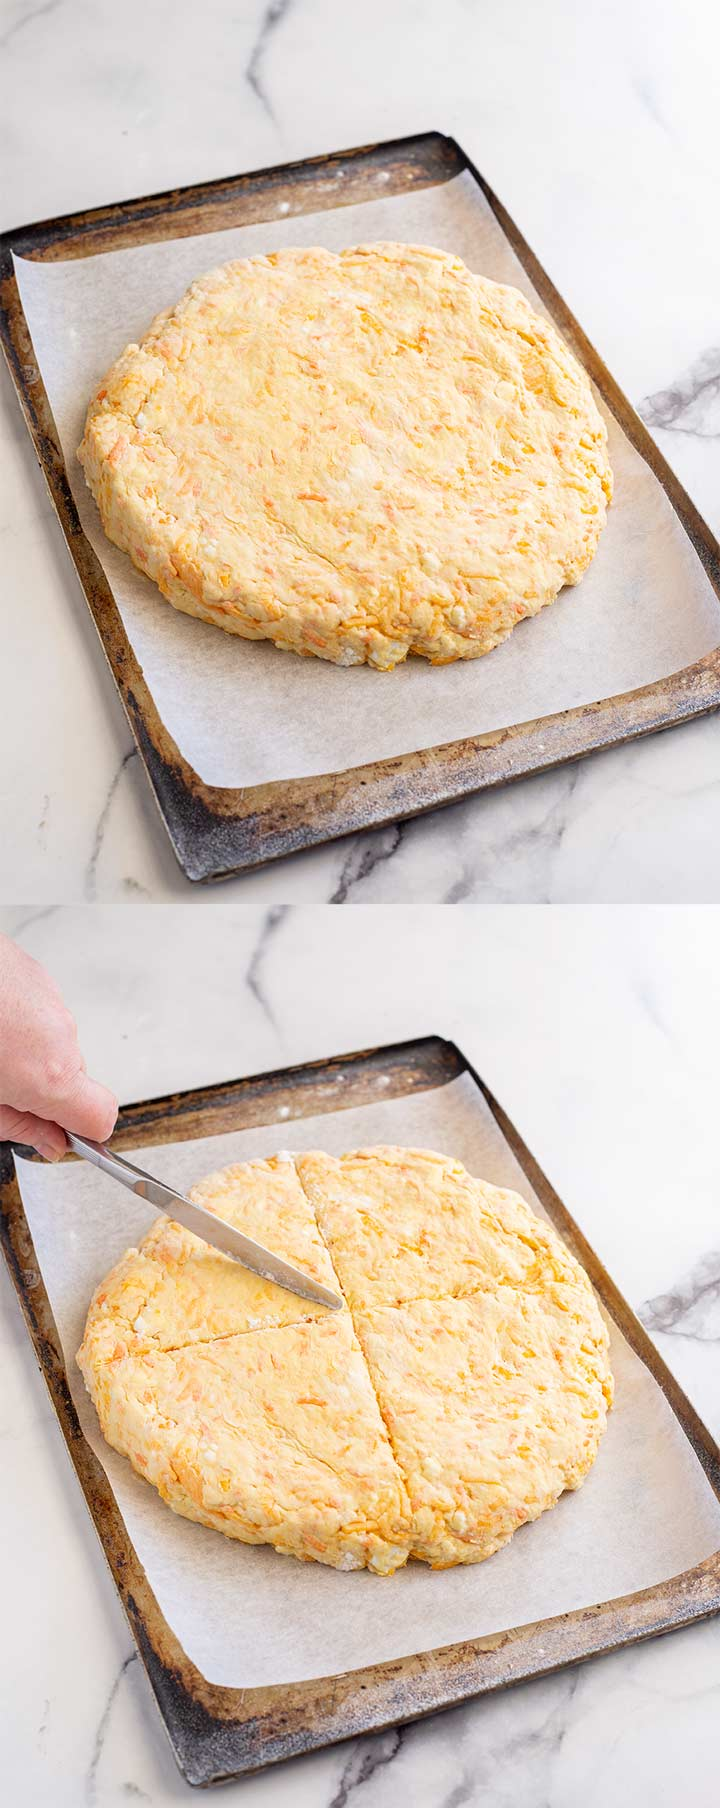 two pictures showing how to form the quick bread before baking